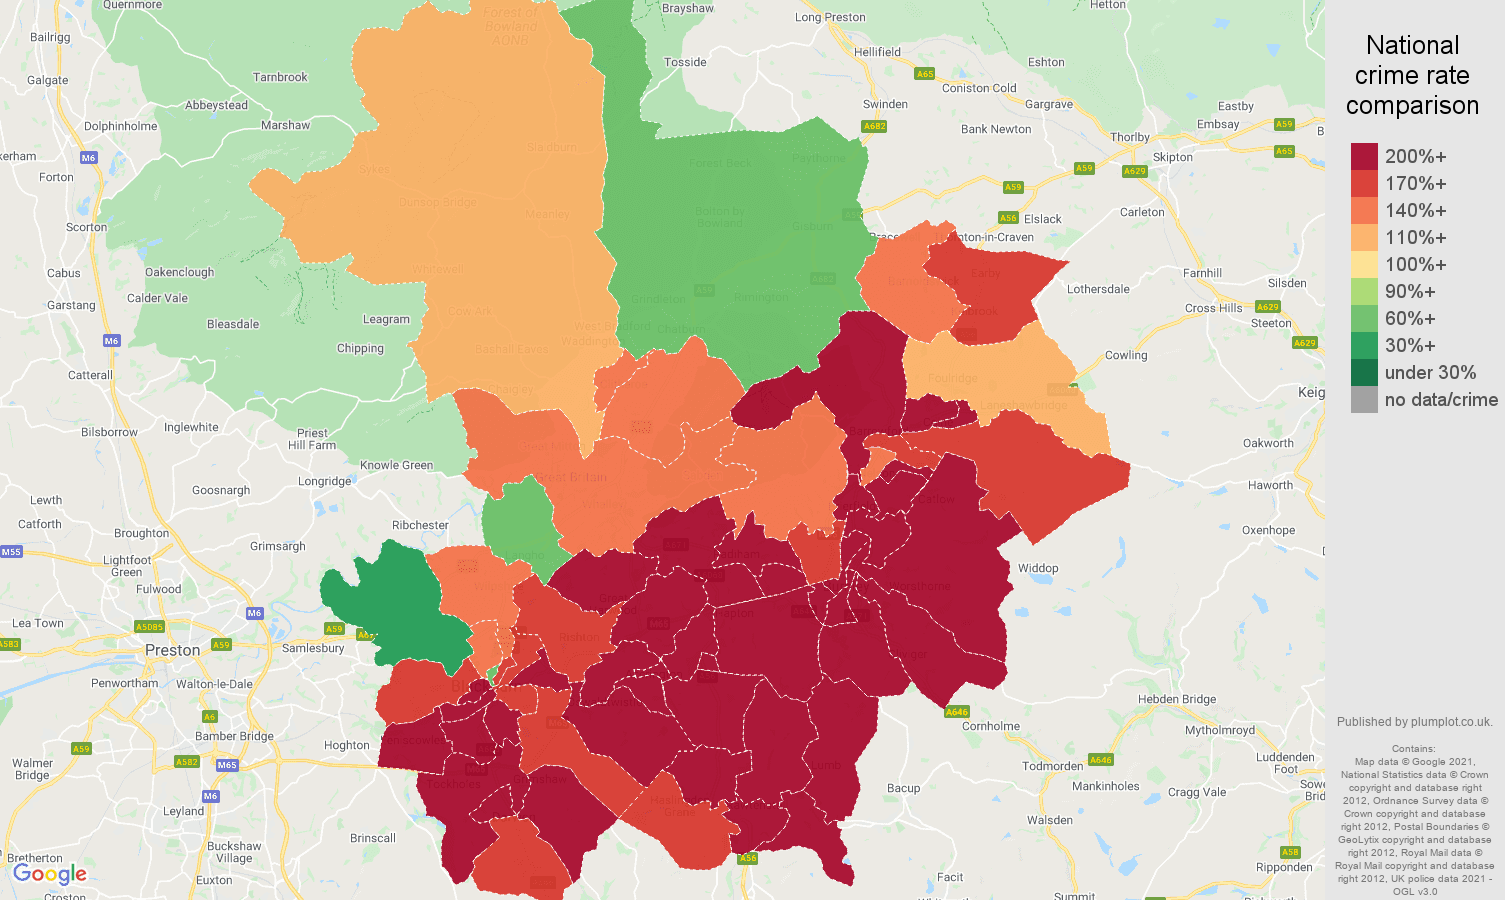 Blackburn antisocial behaviour crime rate comparison map